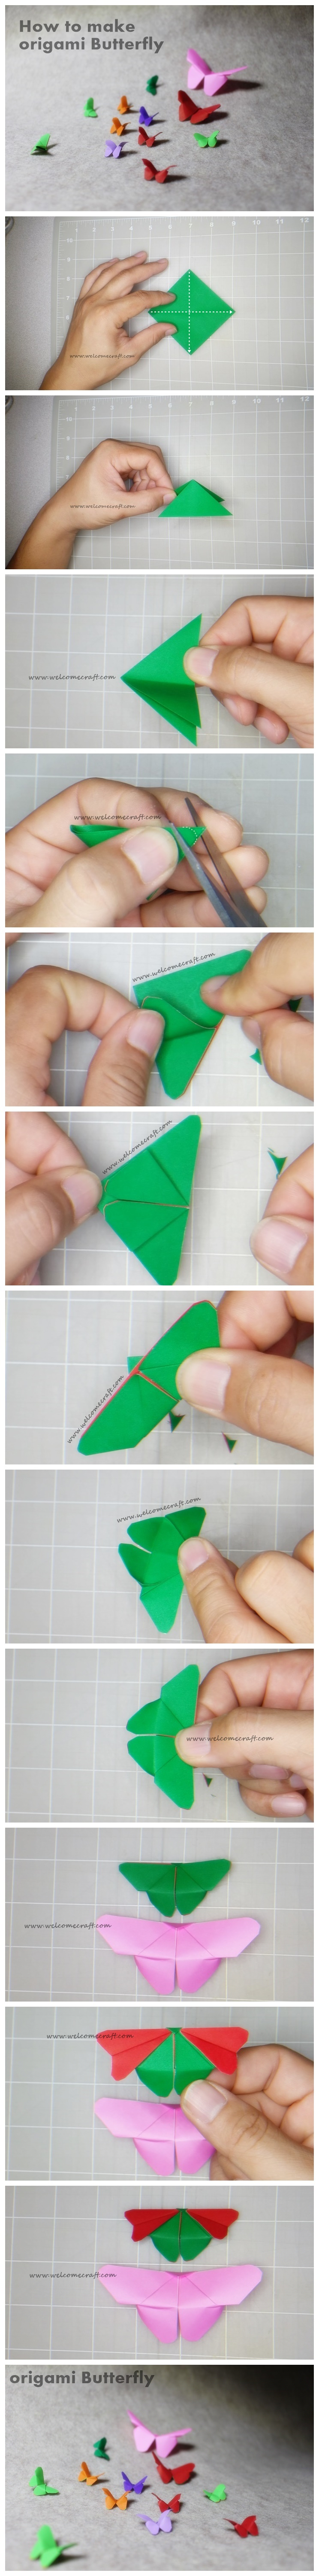 DIY Origami Fabric Butterfly Free Sewing Pattern & Tutorial | 6000x744